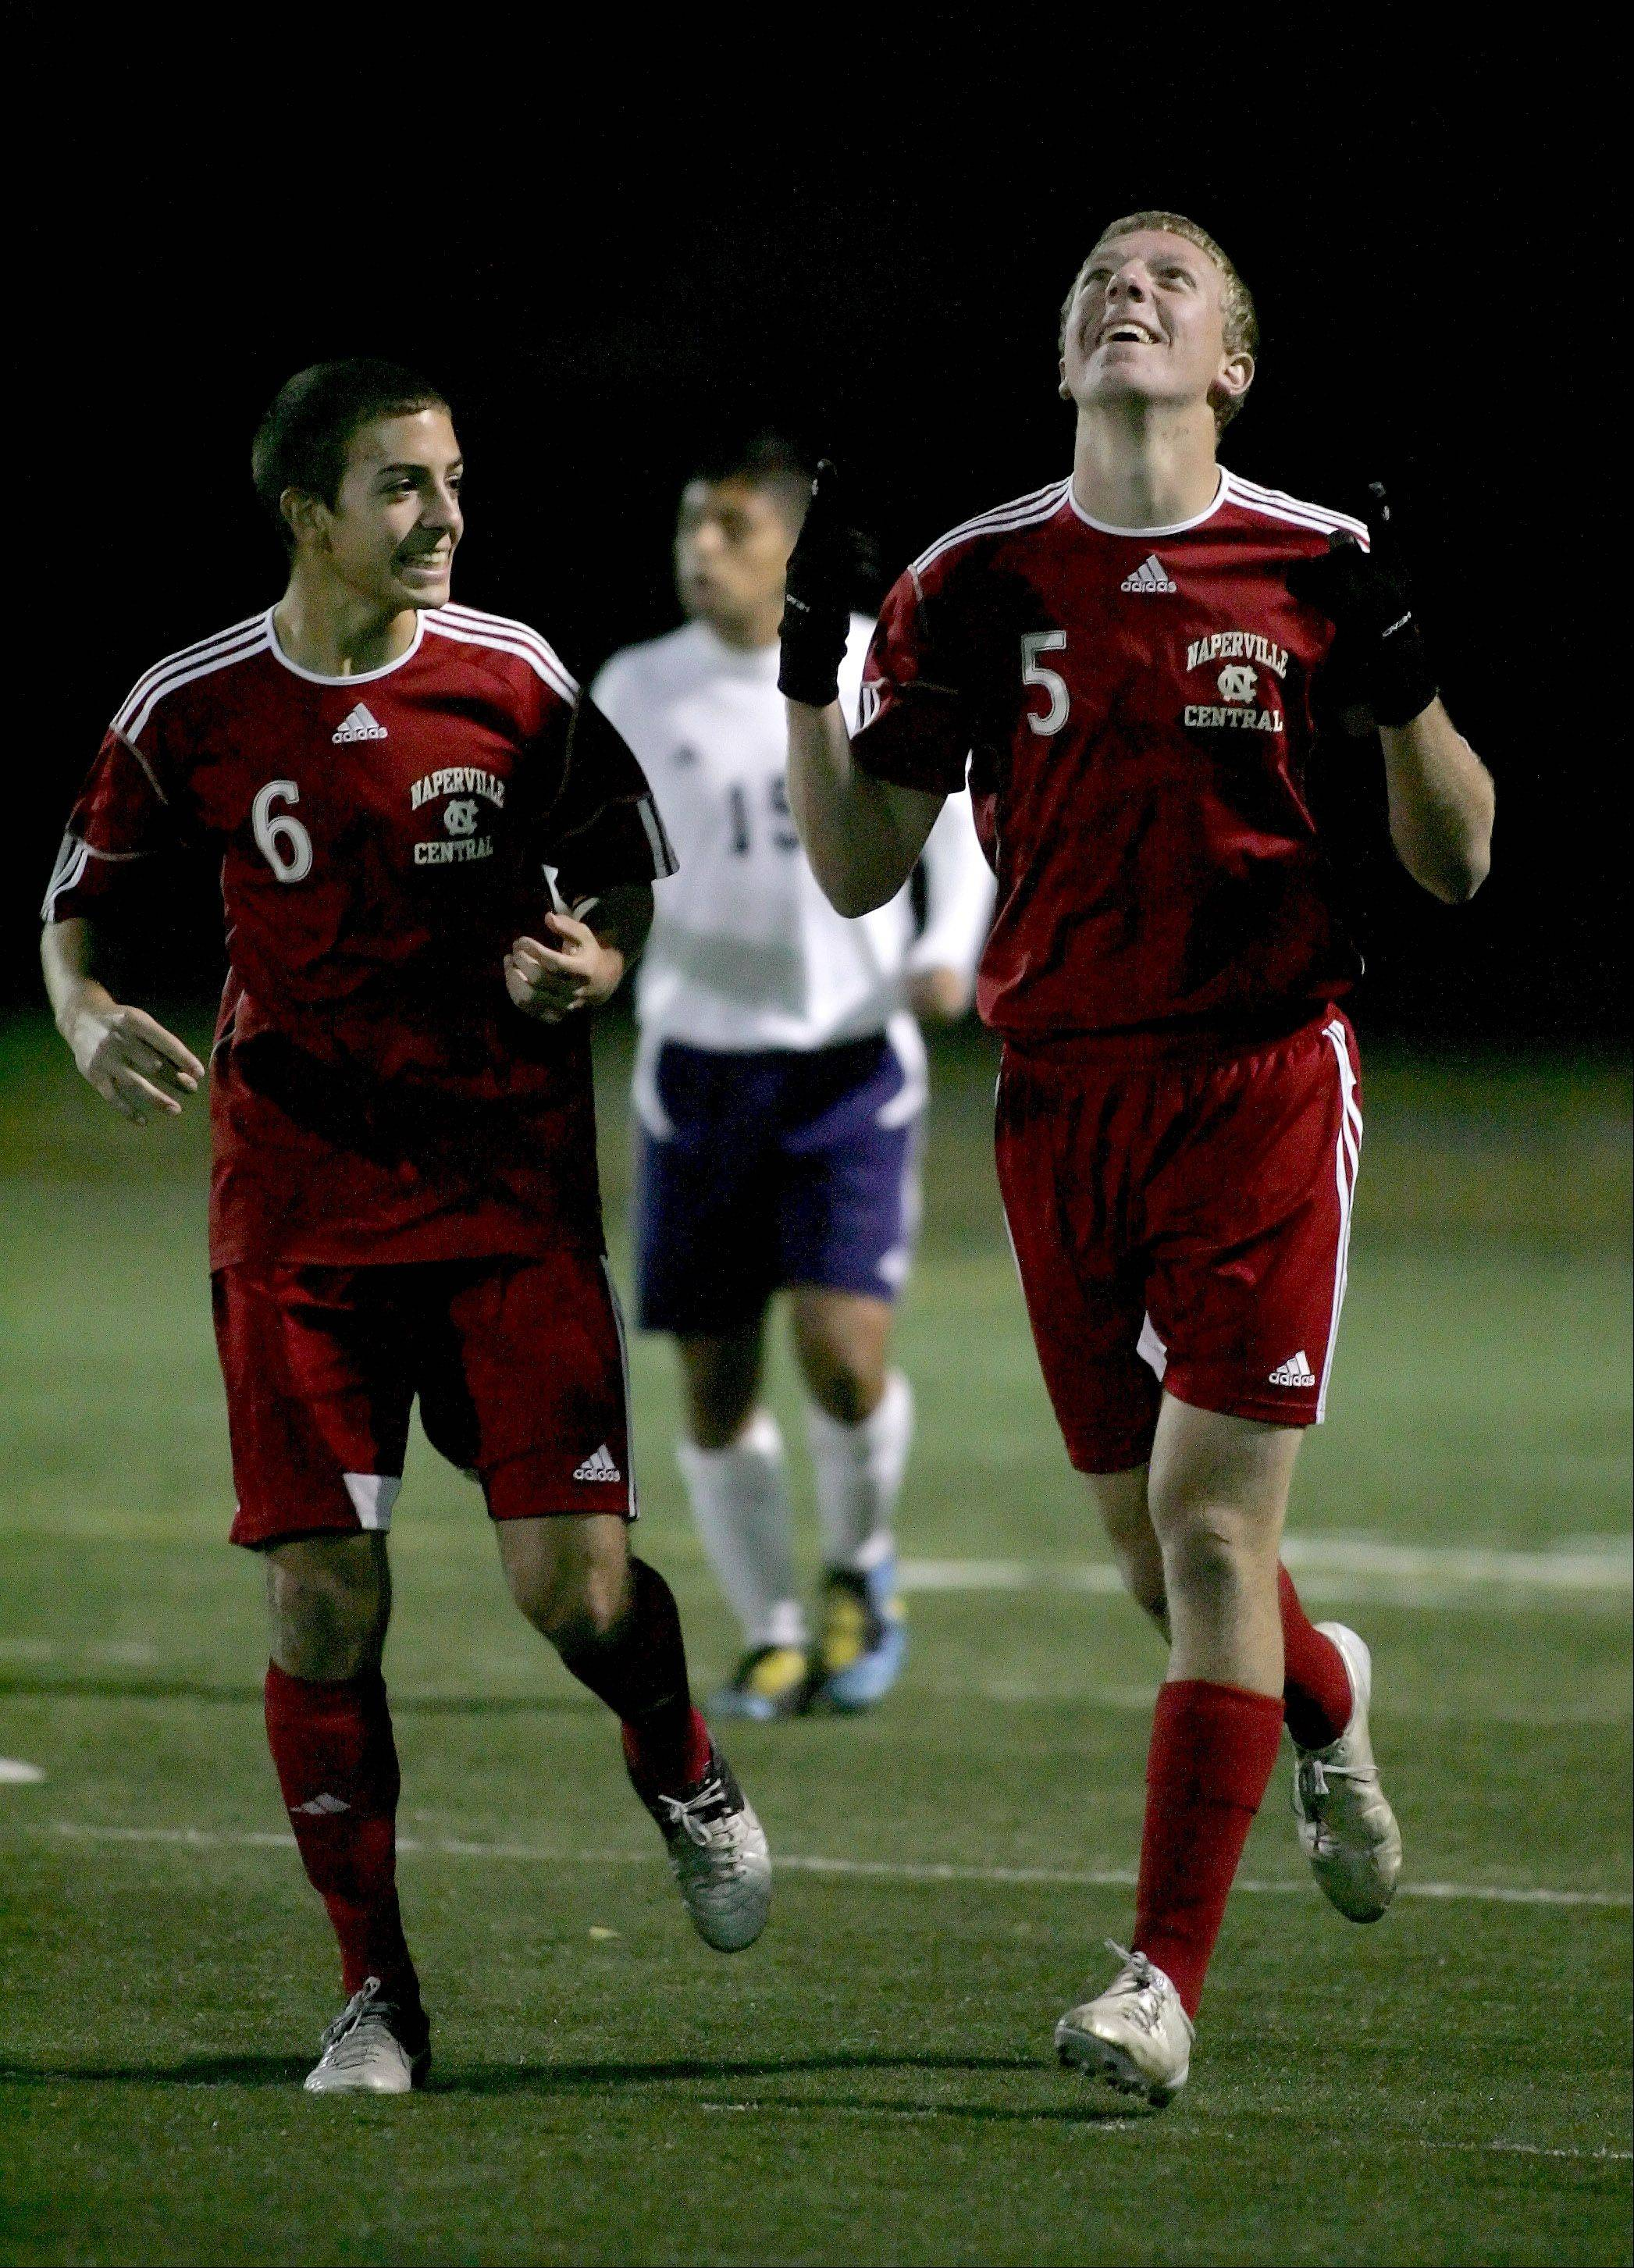 Pat Flynn, right, of Naperville Central celebrates his goal with teammate Mike West against West Chicago on Tuesday.